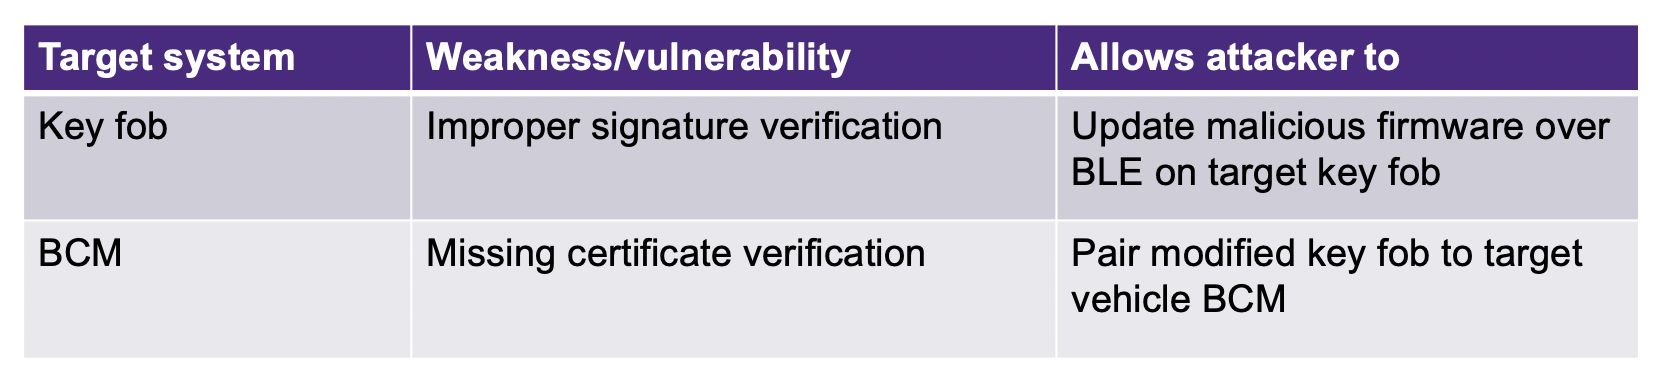 vulnerabilities and weaknesses in key fob hack | Synopsys